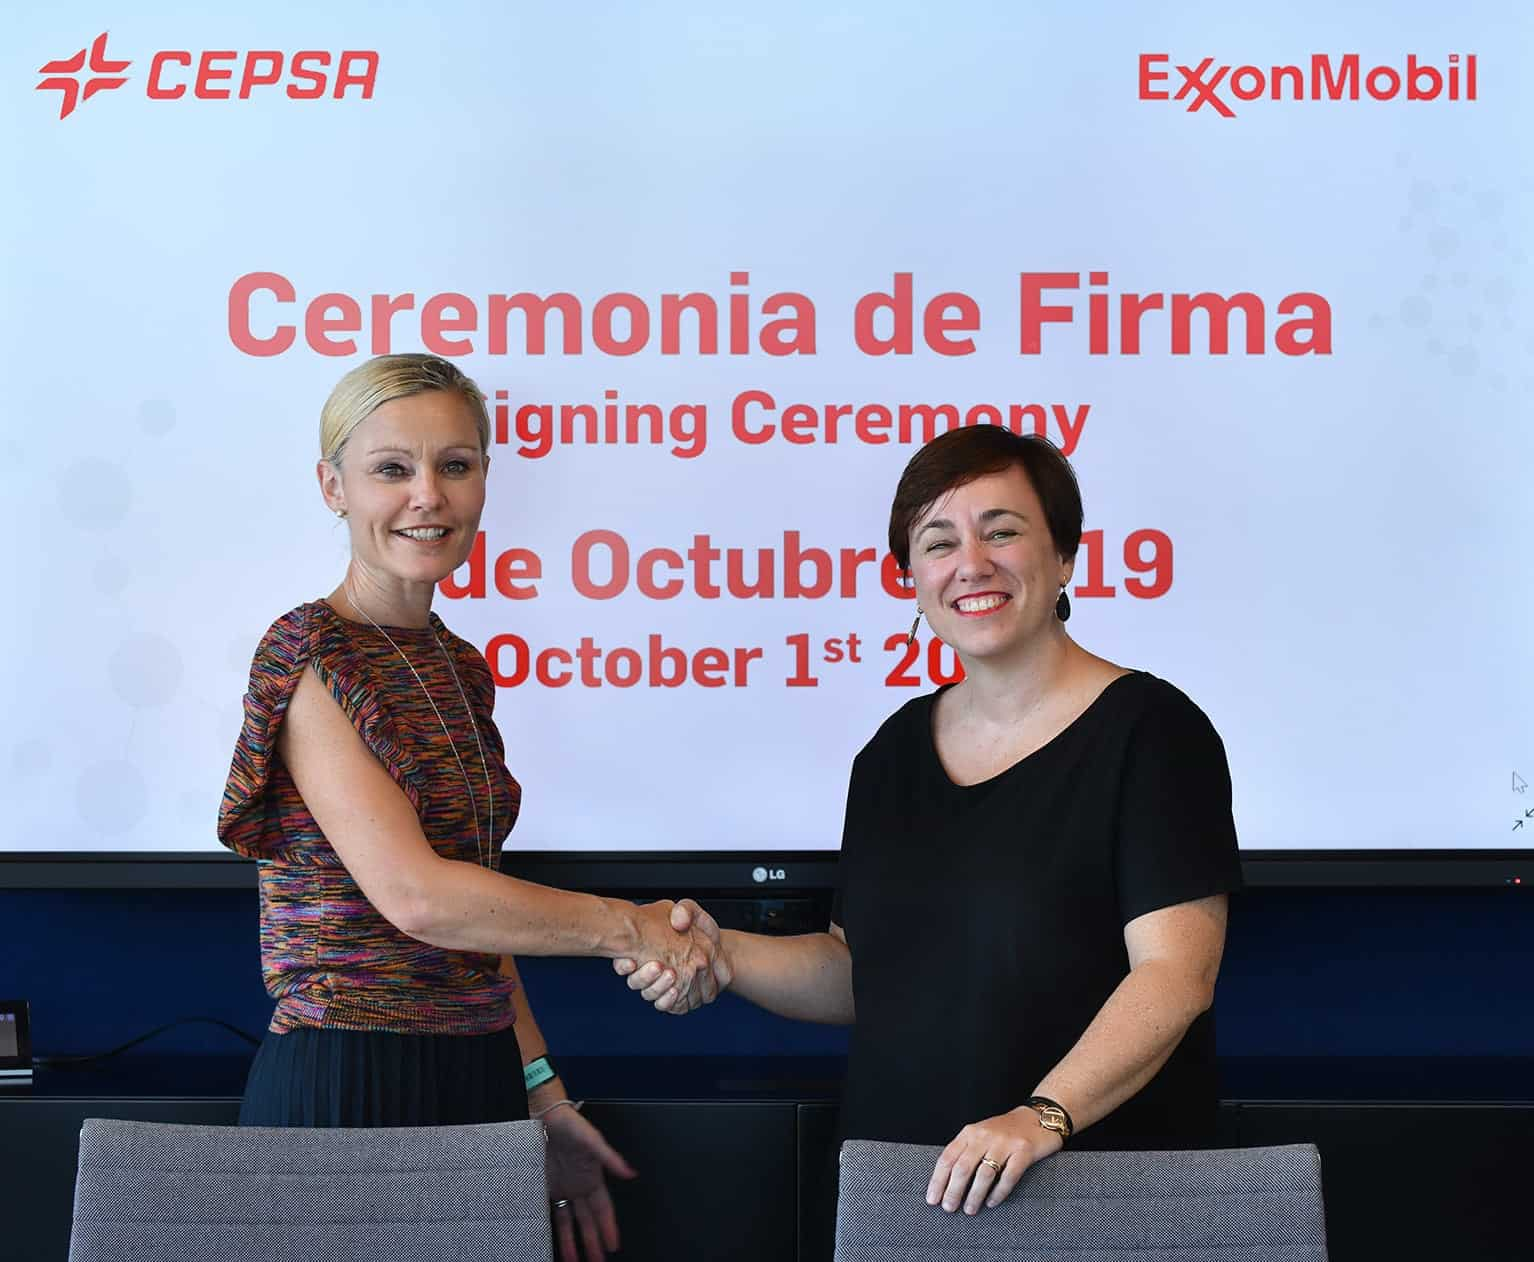 Pamela Skaufel, of Exxon Mobil, and Niurka Sancho, of Cepsa, during the signing of the agreement renewal.